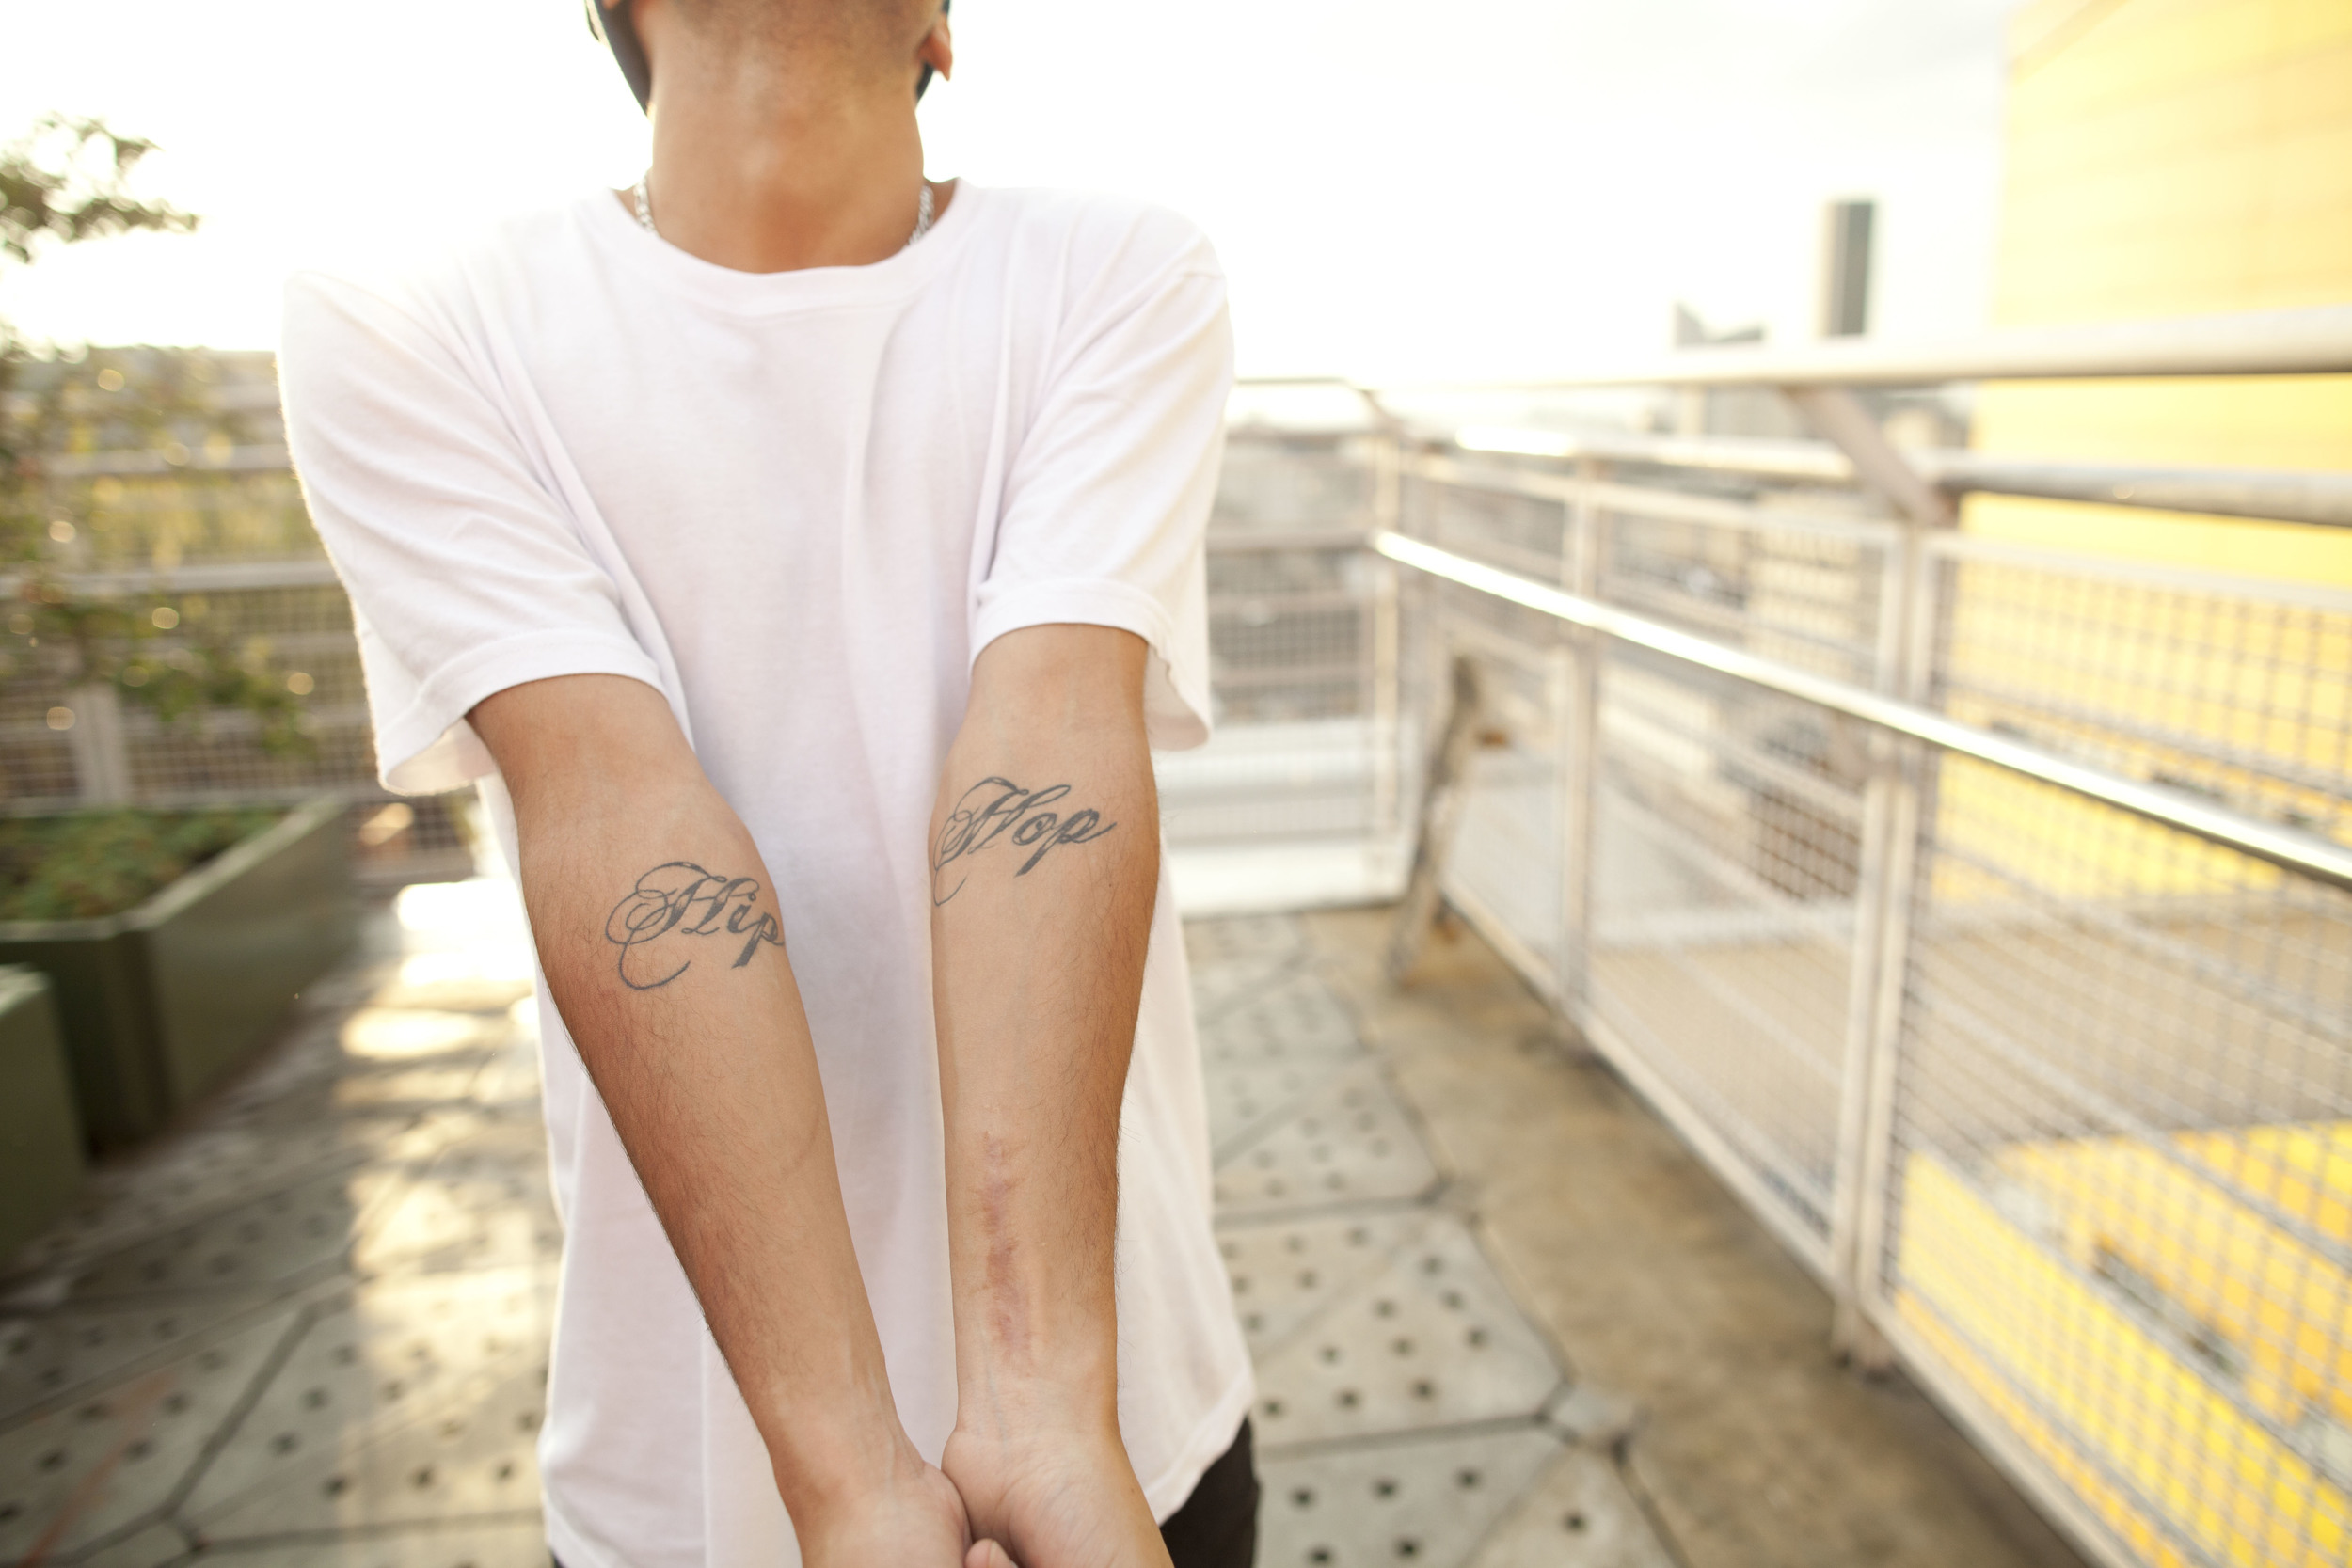 Bogotá. 3 August 2012. Felipe's arm marked by a scar from a previous skateboarding accident and a tattoo saying 'Hip Hop'.